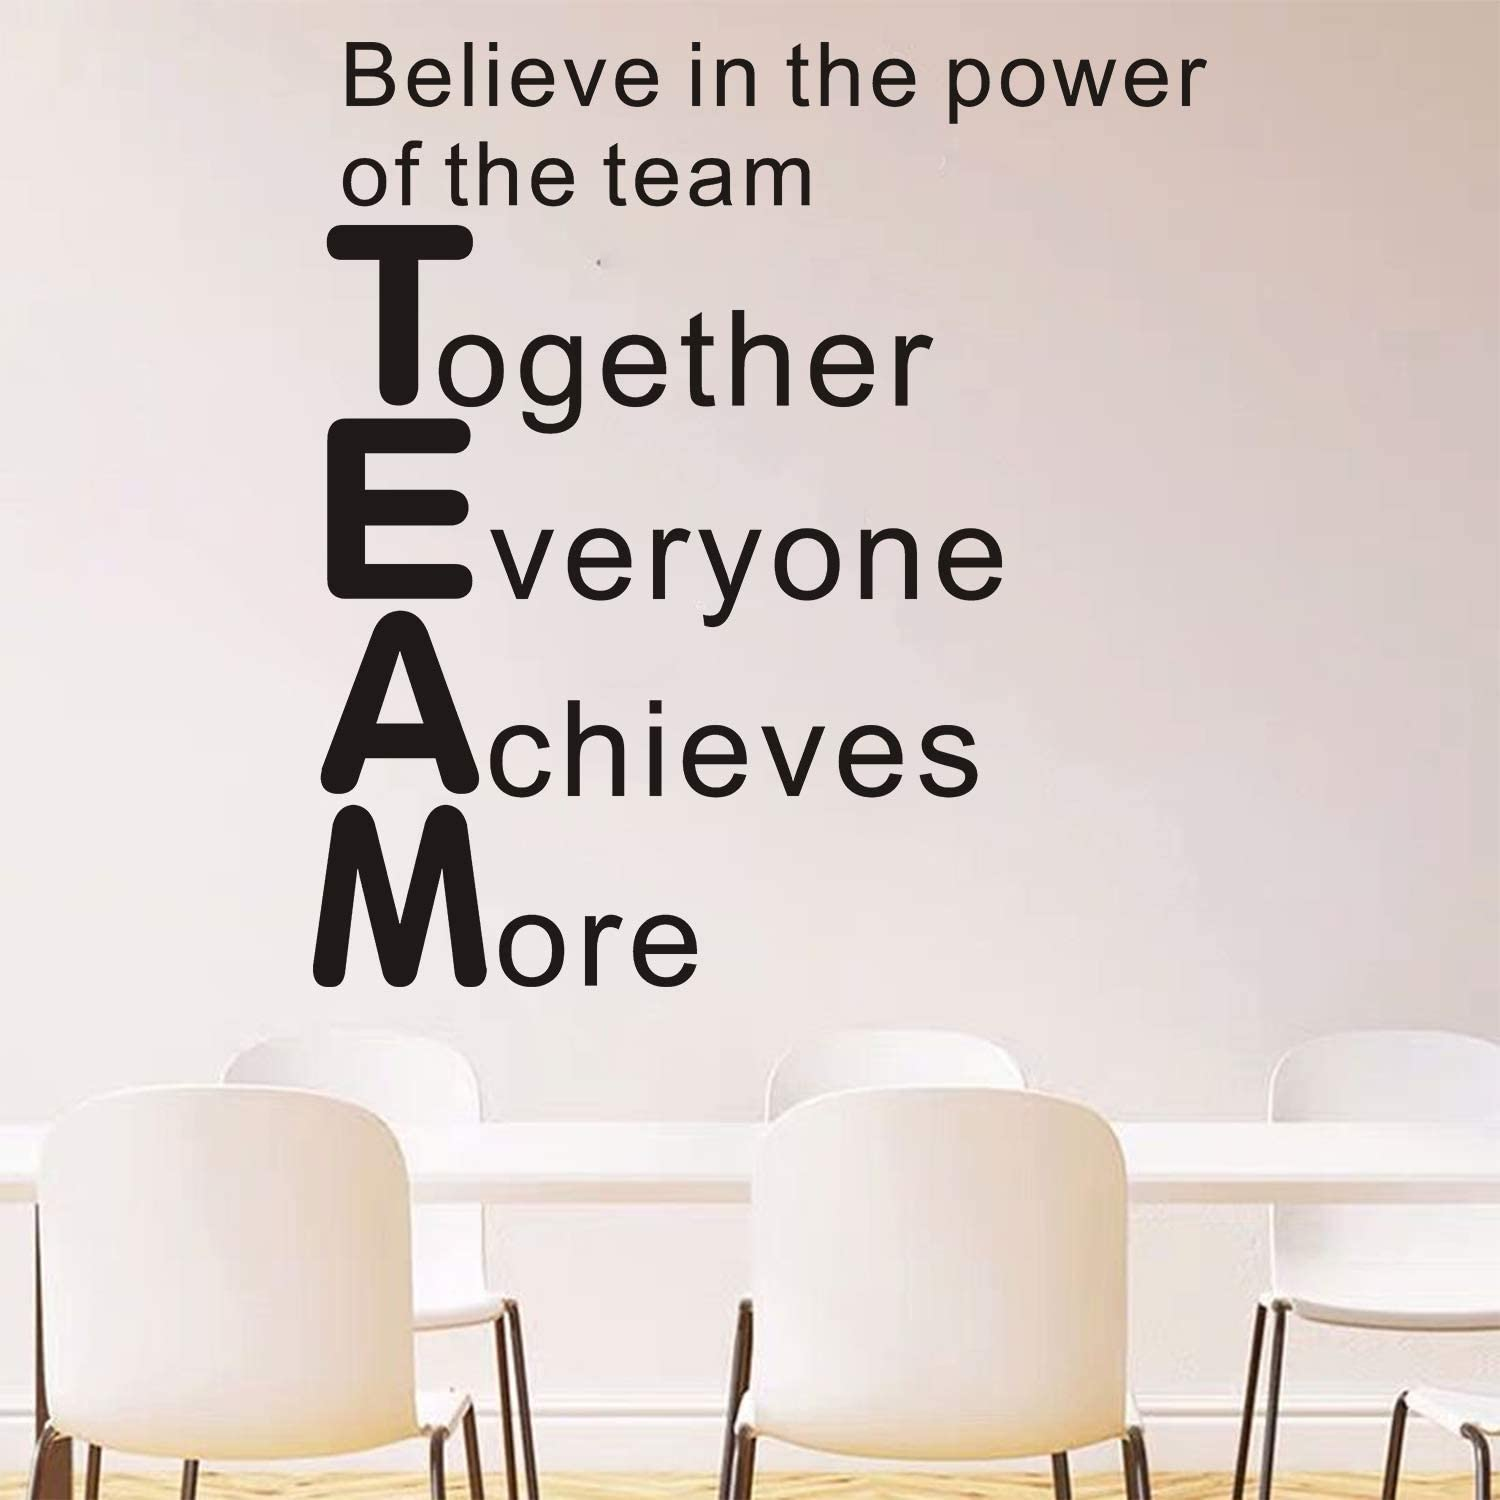 """AnFigure Quotes Wall Decal, Teamwork Wall Decals for Office, Playroom Classroom Inspirational Home Art Decor Vinyl Stickers Believe in The Power of The Team Together Everyone Achieves More 21""""x26.2"""""""